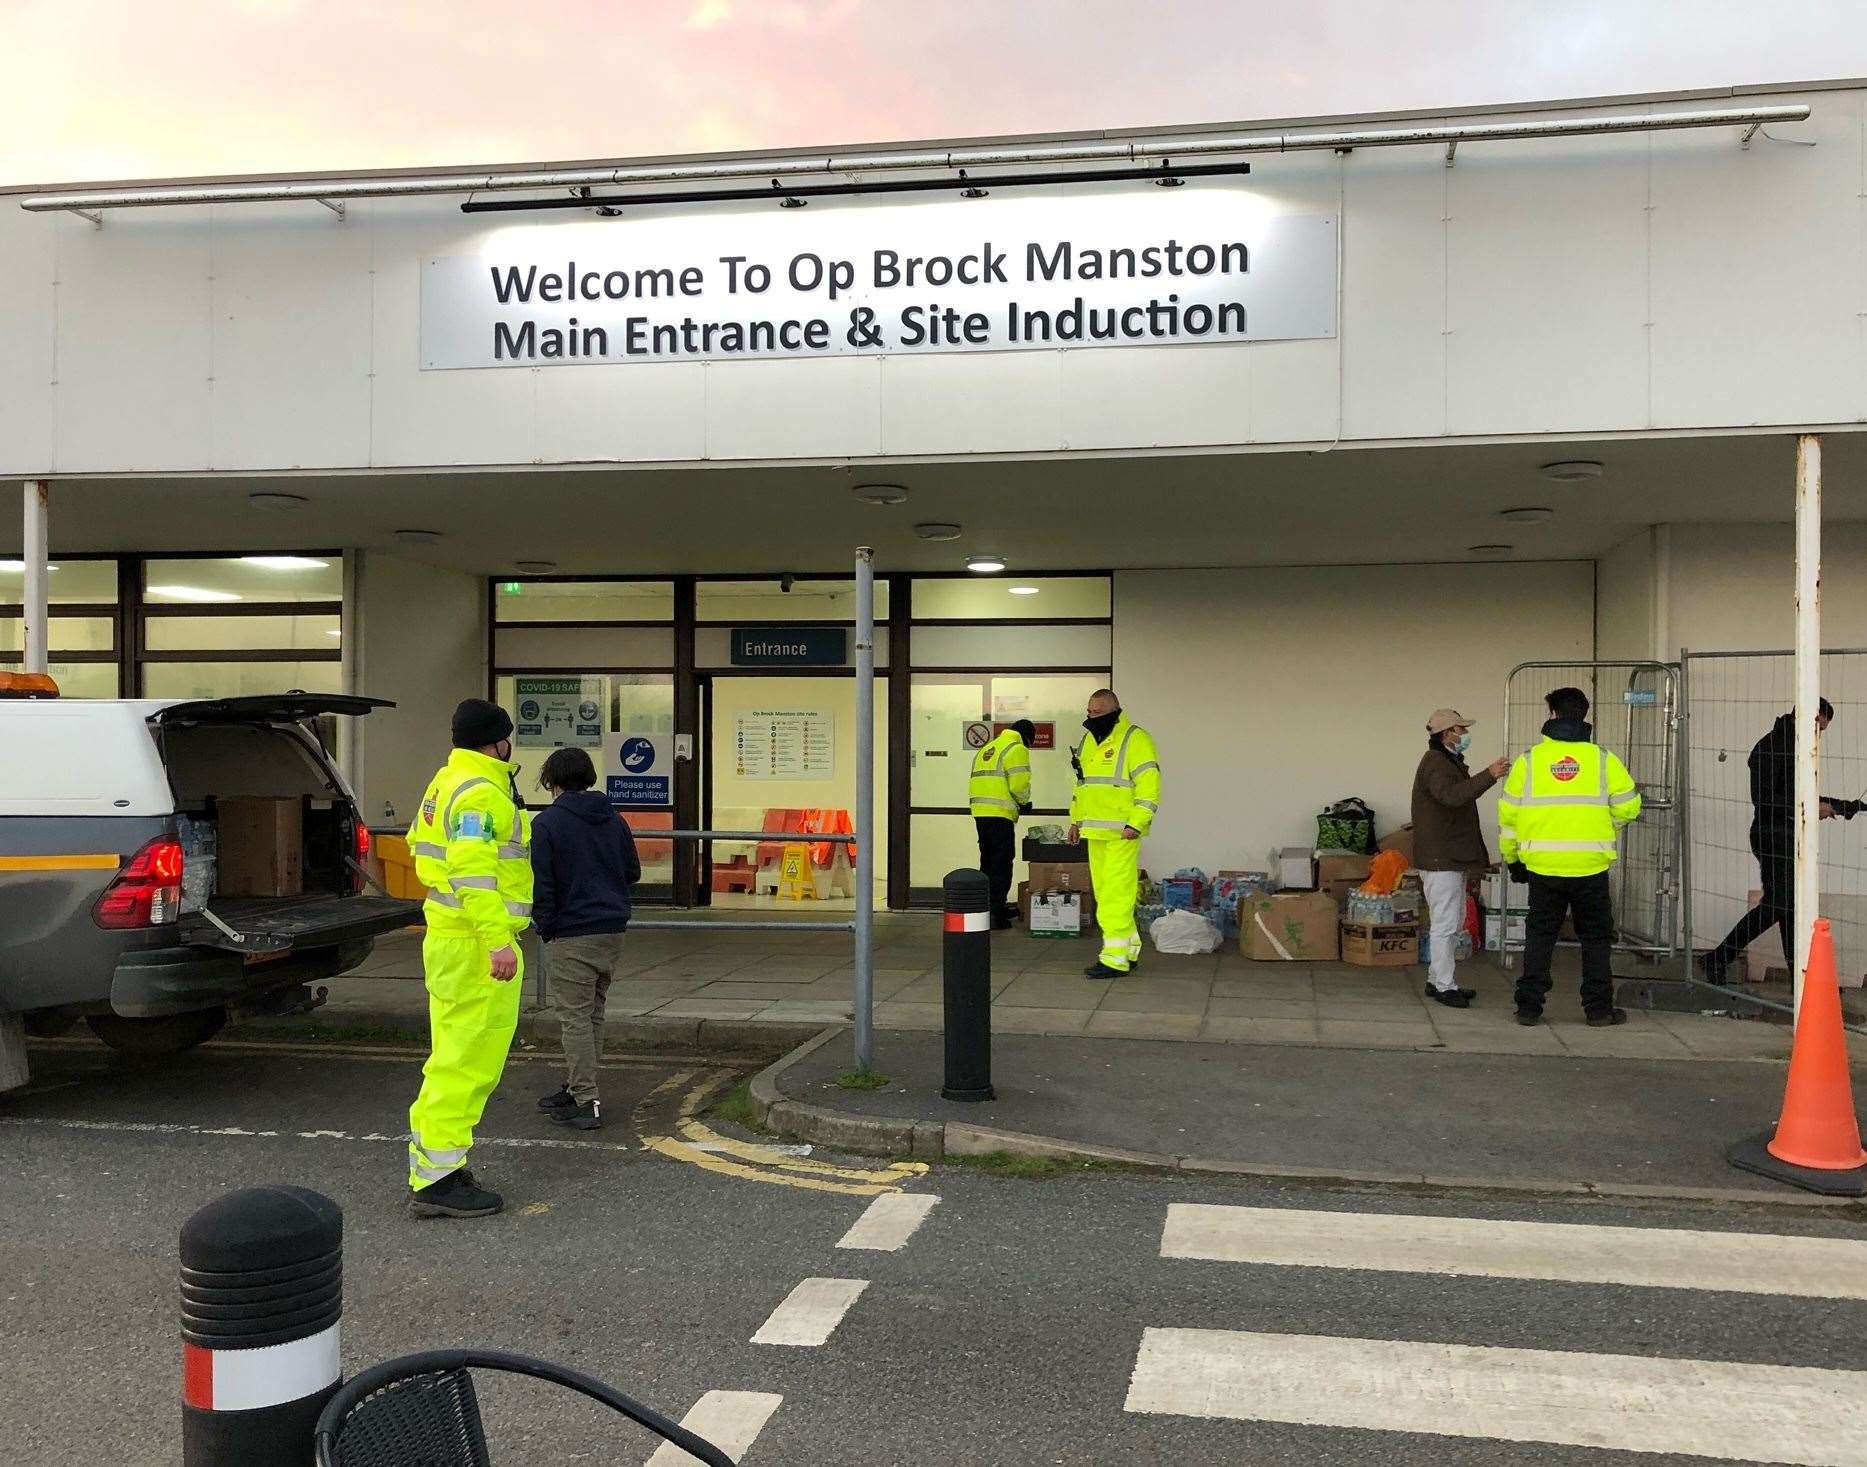 Relief efforts took place to deliver food and other essential items to stranded lorry drivers in Manston yesterday